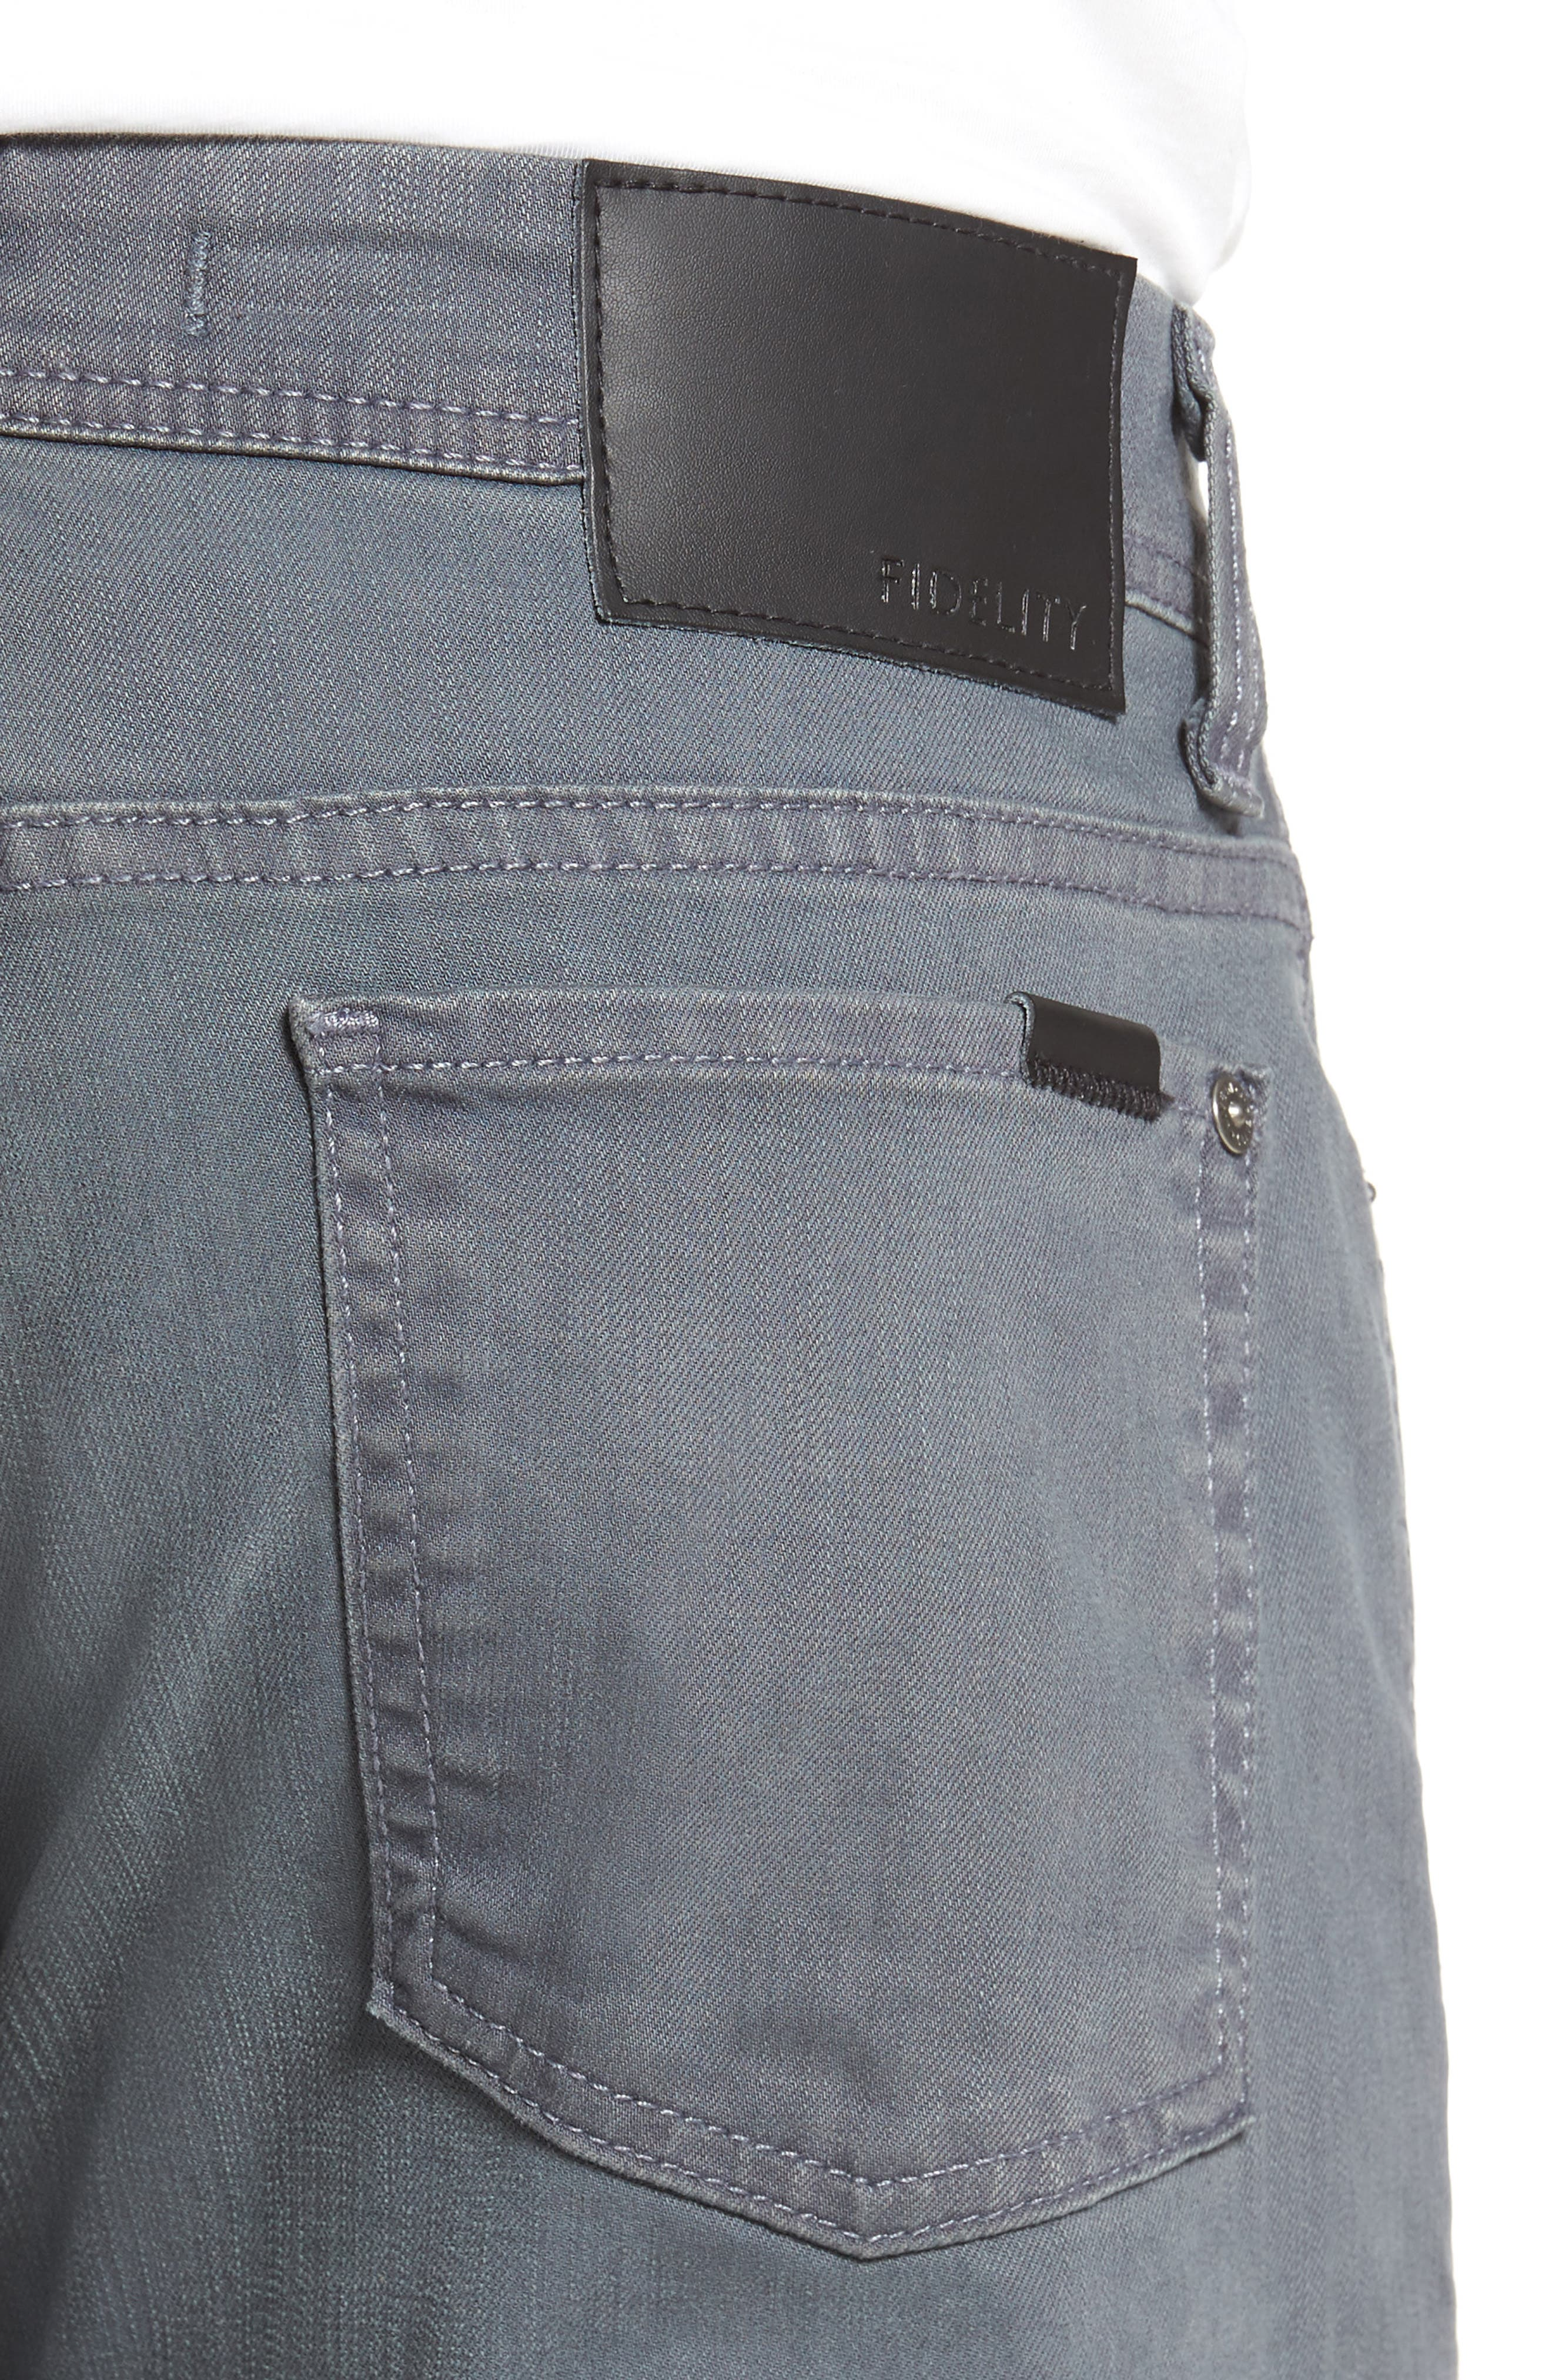 Jimmy Slim Straight Fit Jeans,                             Alternate thumbnail 4, color,                             020